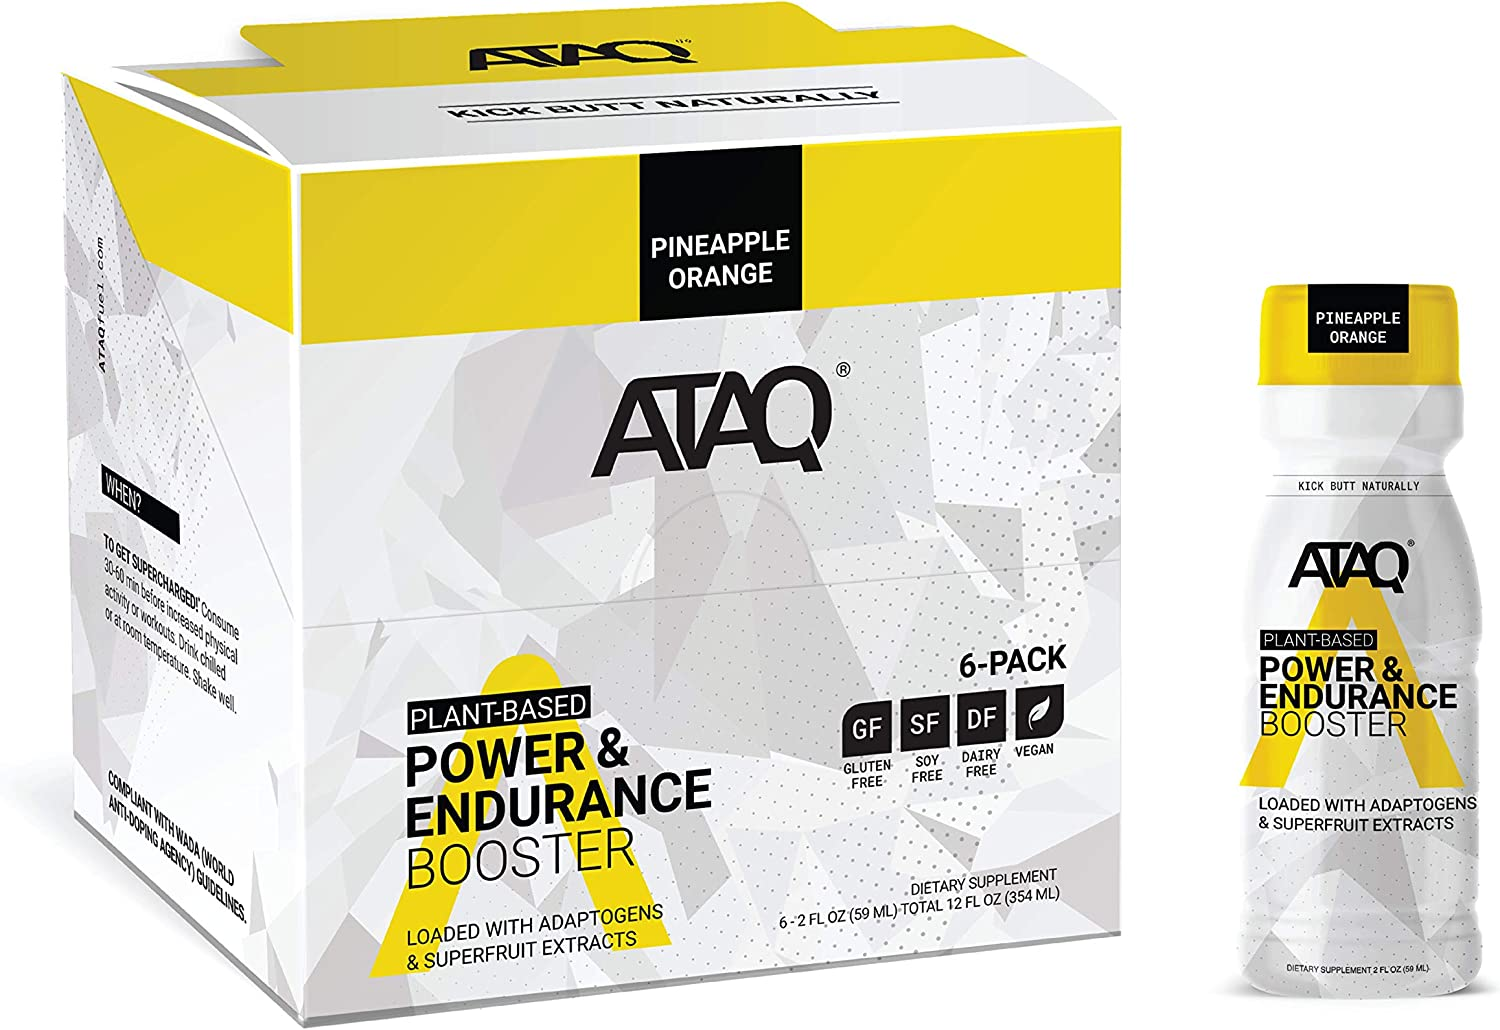 ATAQ Plant Based Power & Endurance Booster Shot, Pineapple Orange, Adaptogens & Nootropics for Sustained Performance, Naturally Sweetened, 2oz Bottle, 6 Count: Health & Personal Care